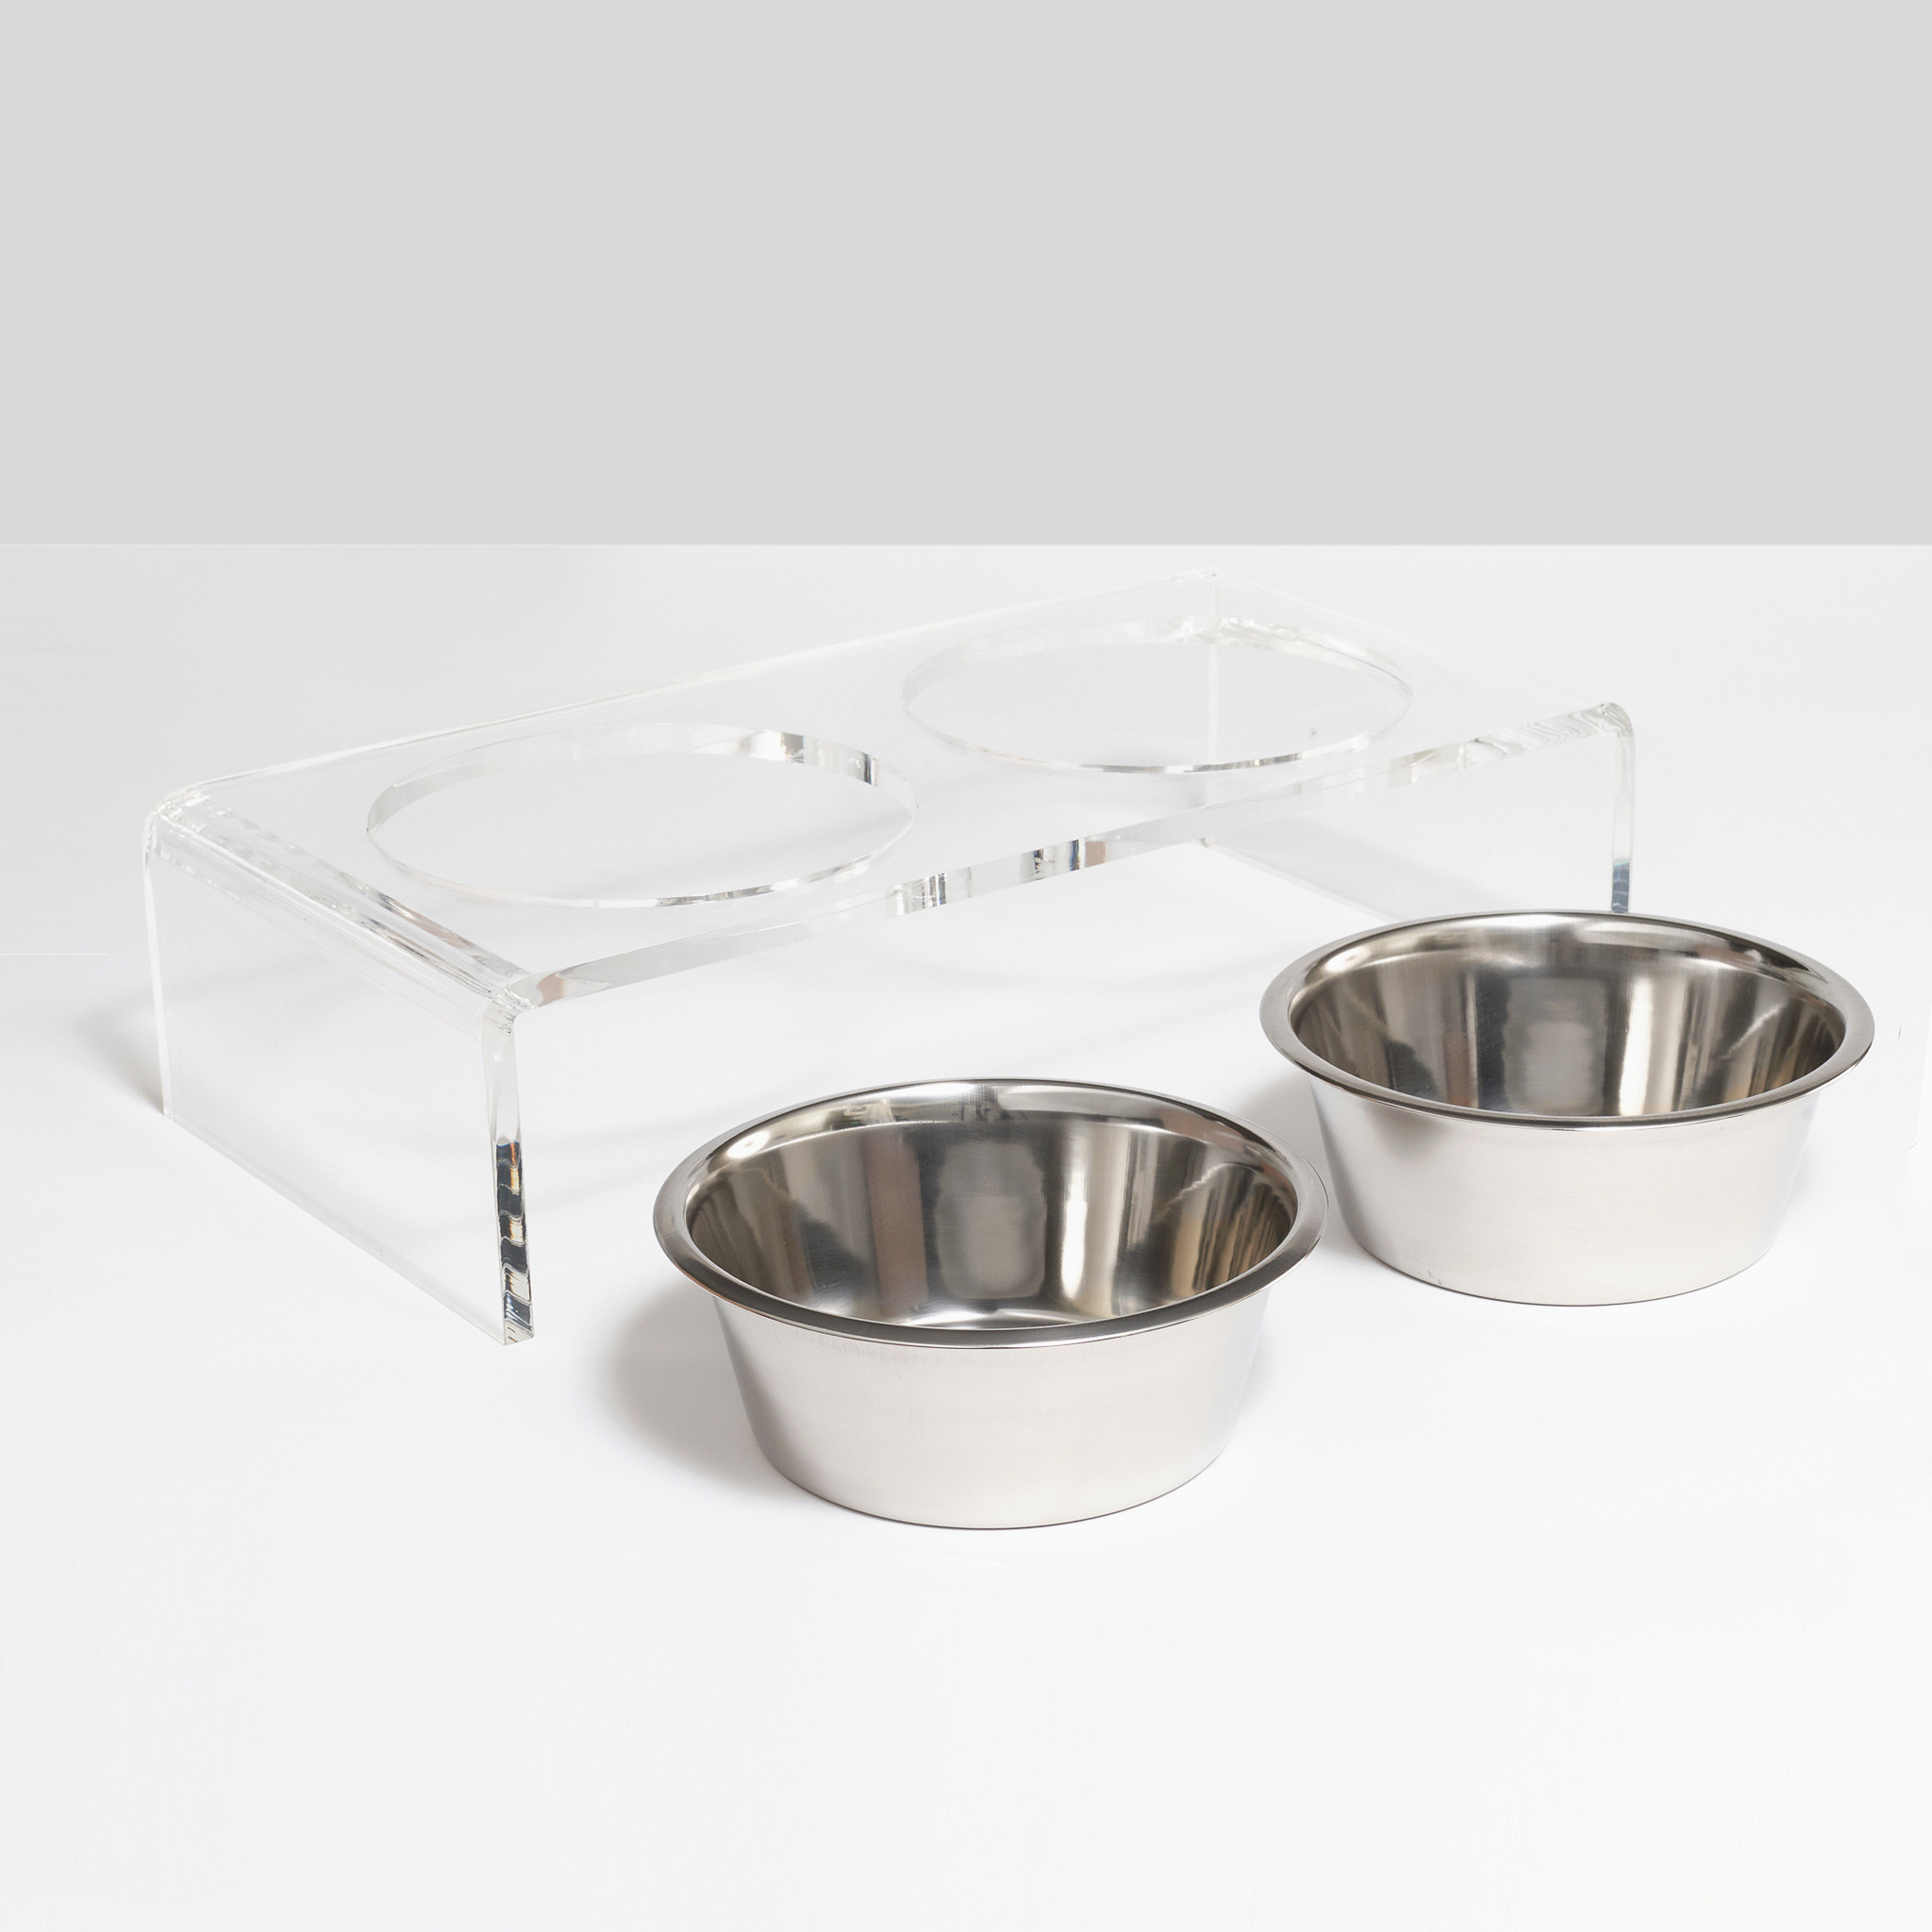 clear dog bowl stand lucite acrylic transparent plastic molded cheap raised dog bowl feeder set